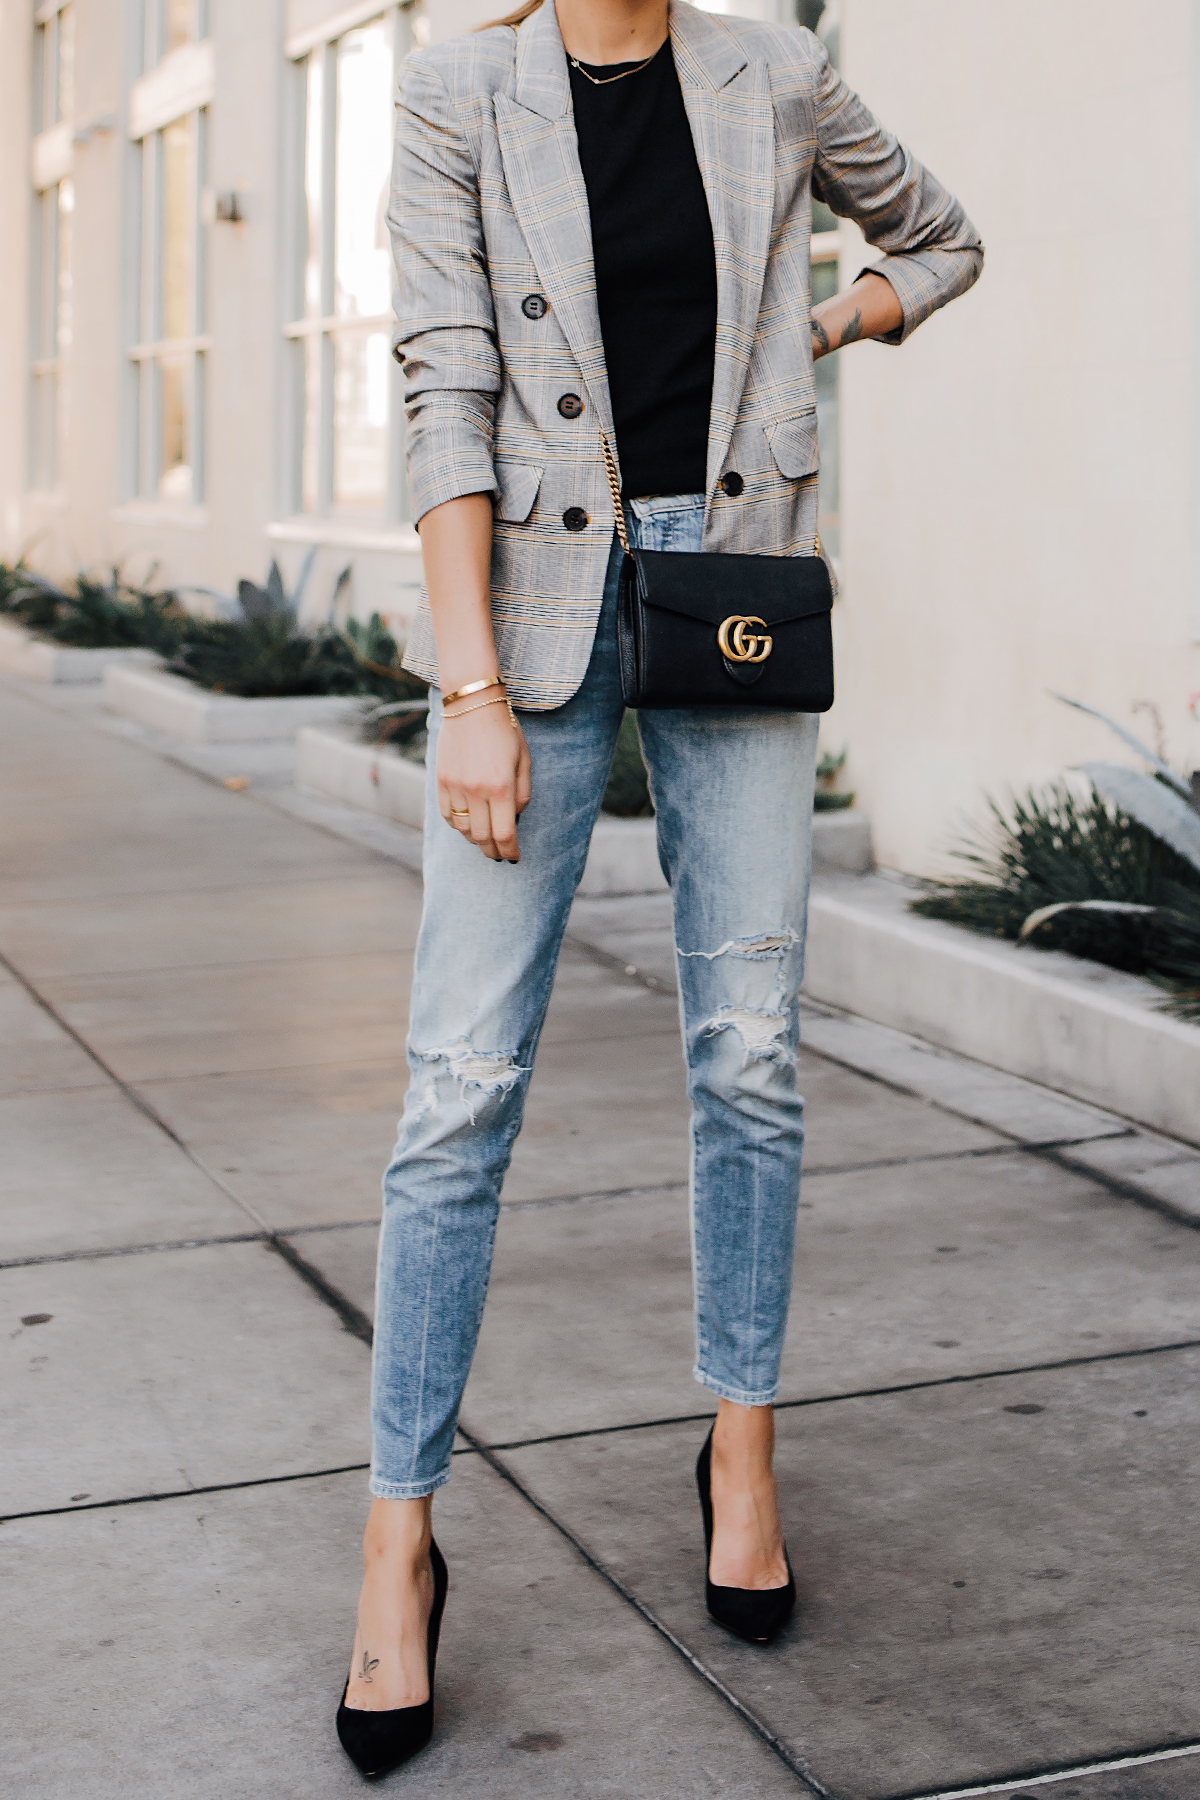 Woman Wearing Plaid Blazer Mother Ripped Denim Jeans Black Pumps Gucci Black Handbag Fashion Jackson San Diego Fashion Blogger Street Style